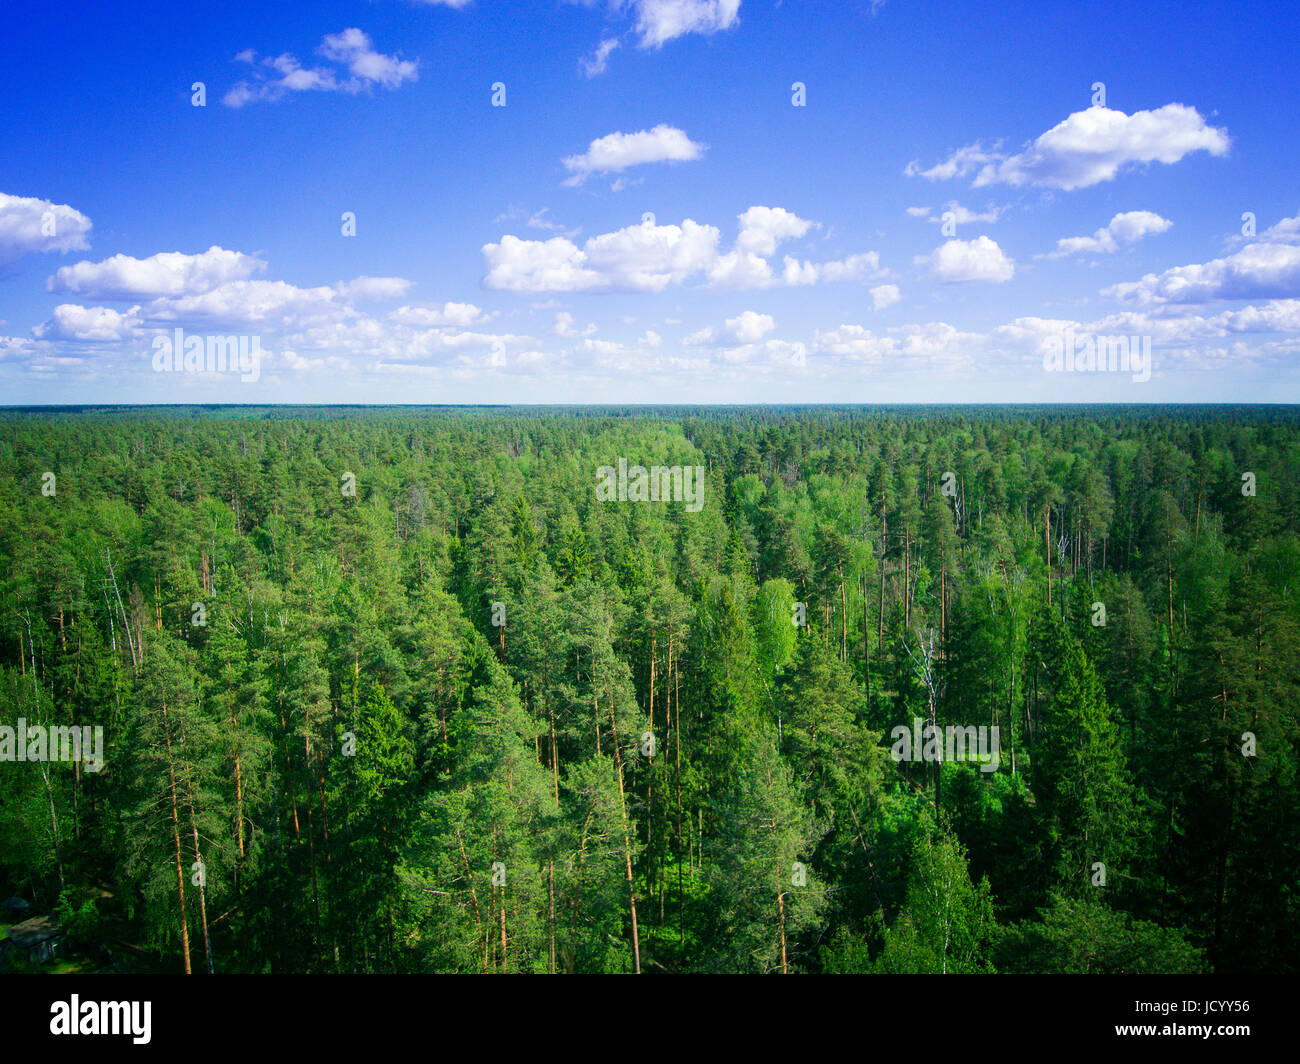 Pine Trees Photo From Drone Aerial Landscape With Sky And Clouds